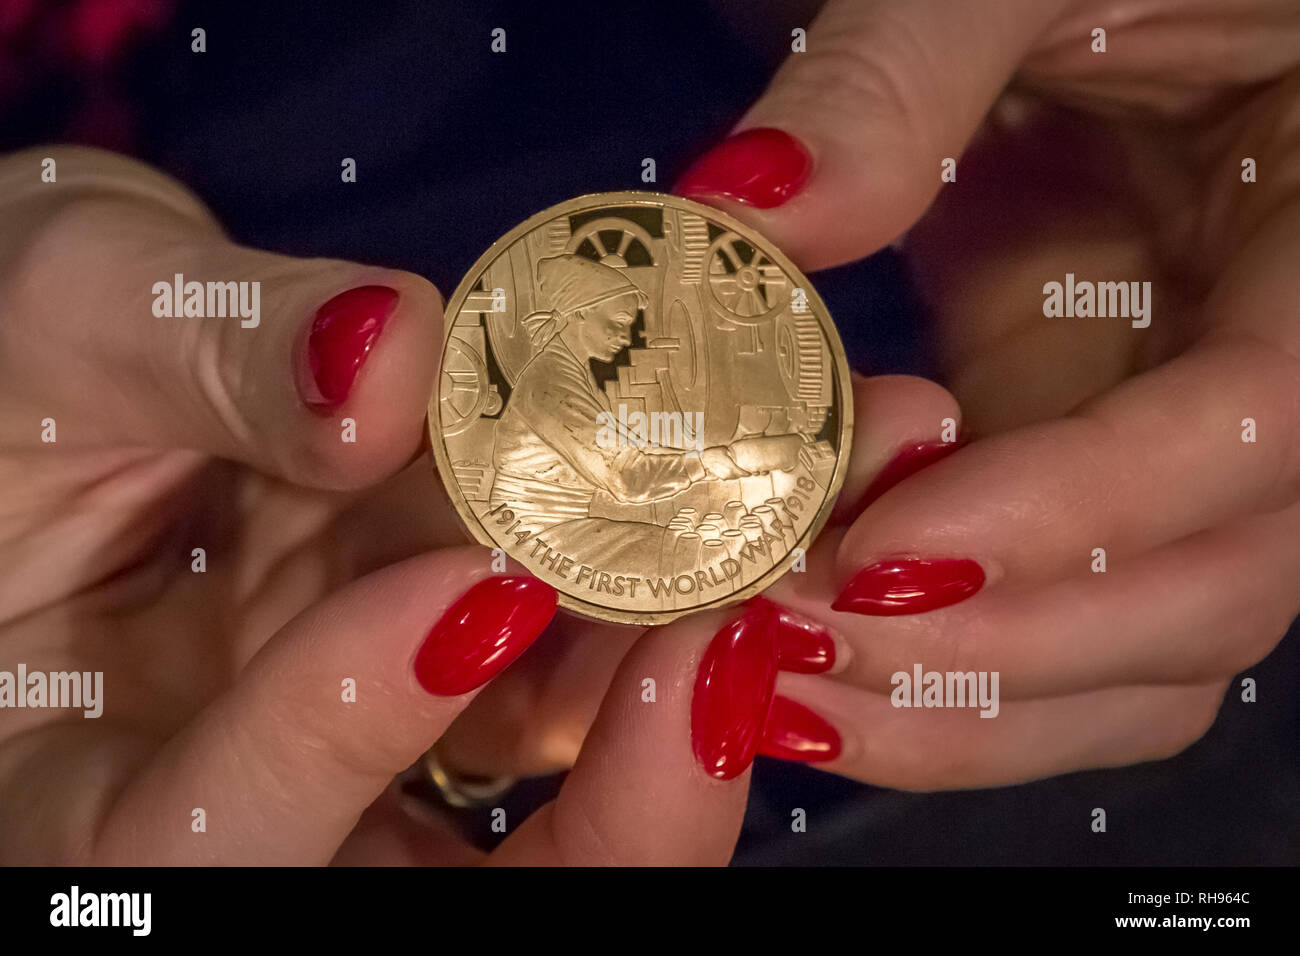 London, UK. 29th Jan, 2019. The Trial of the Pyx at Goldsmiths Hall. Credit: Guy Corbishley/Alamy Live News - Stock Image